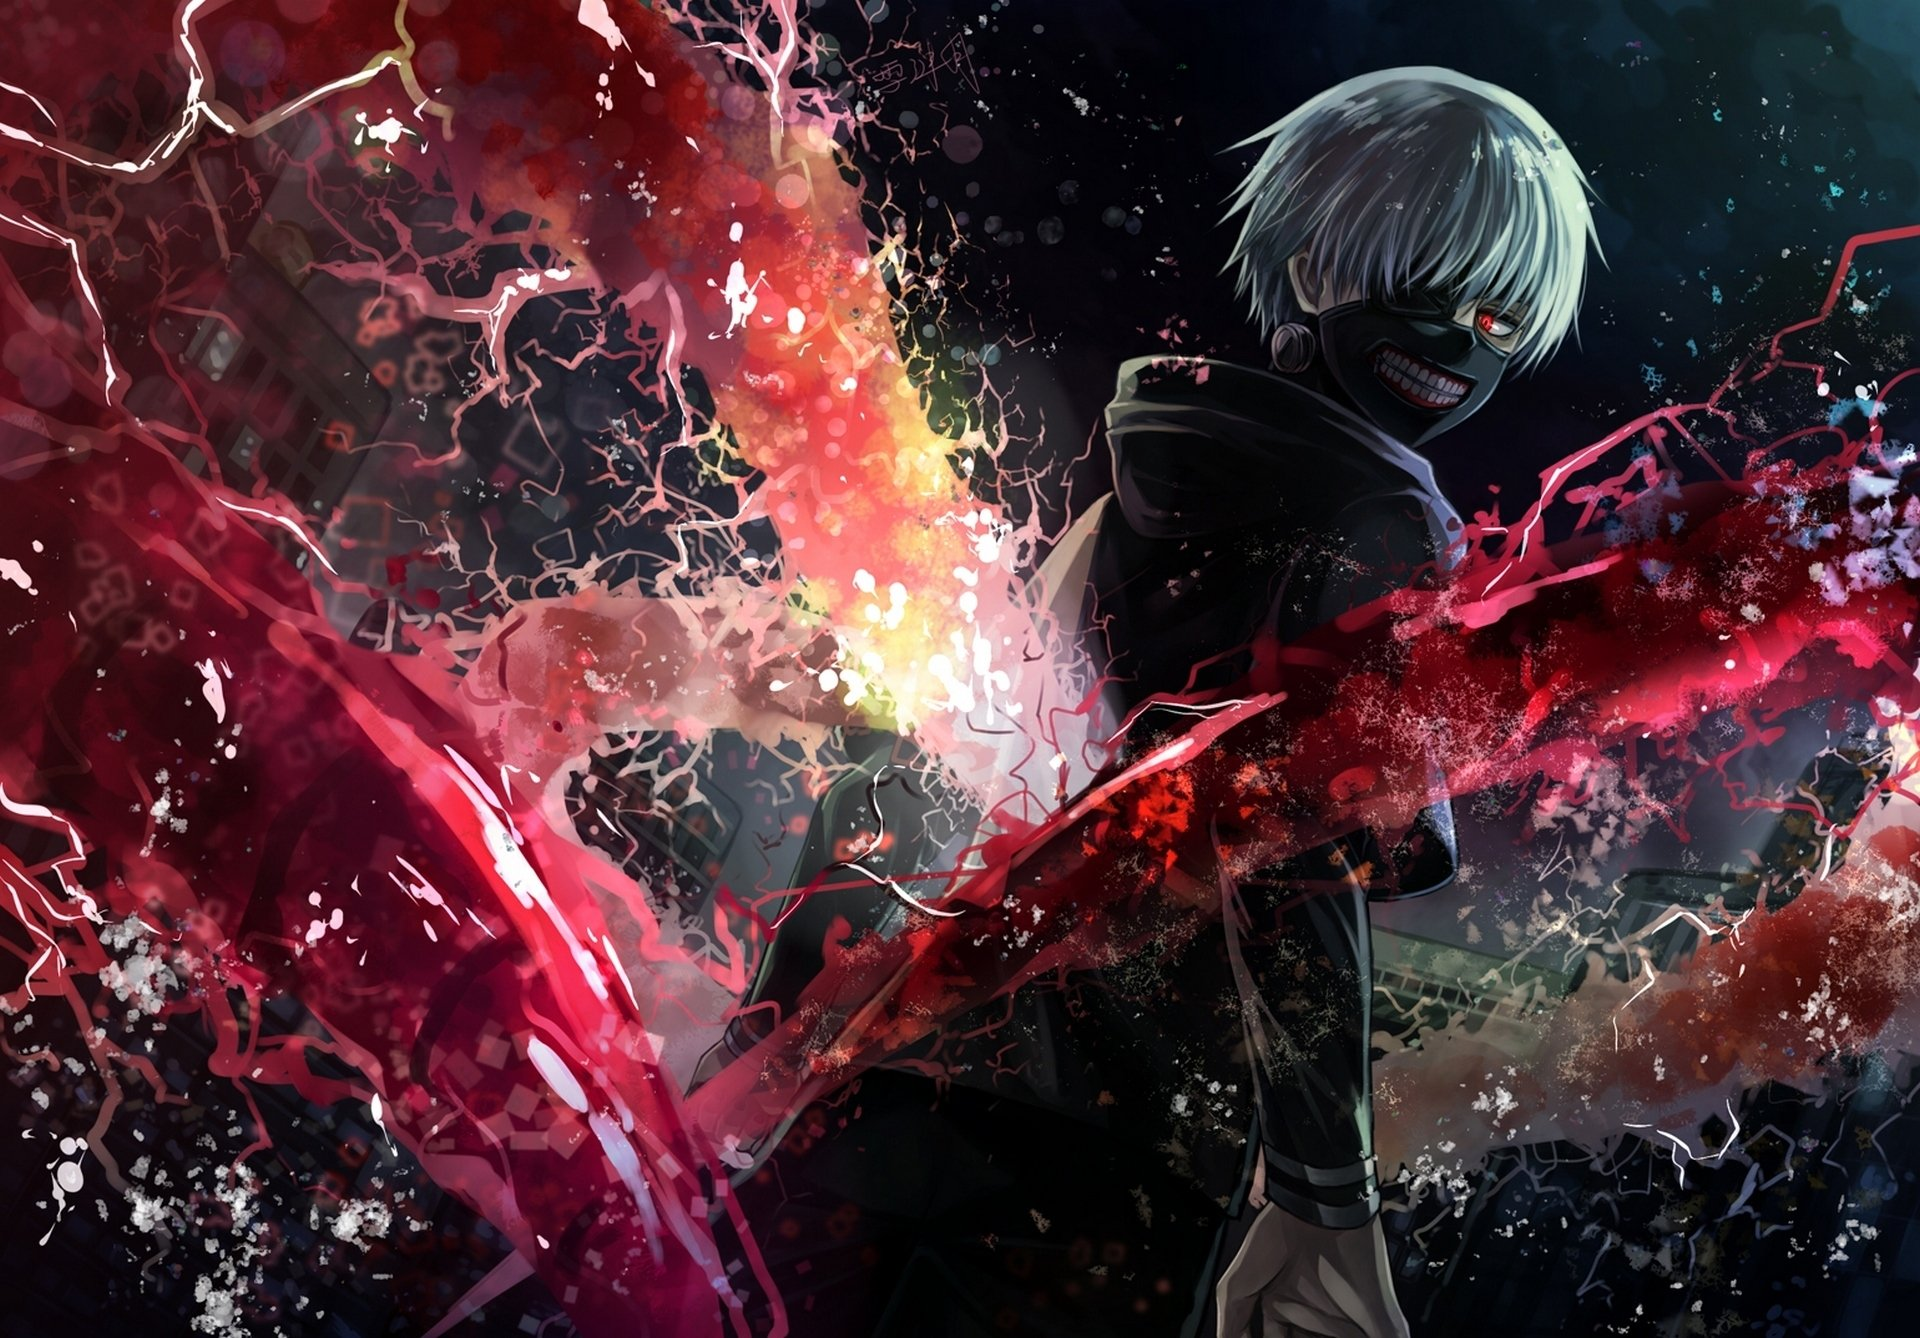 Hd Wallpaper Background Image Id X Anime Tokyo Ghoul